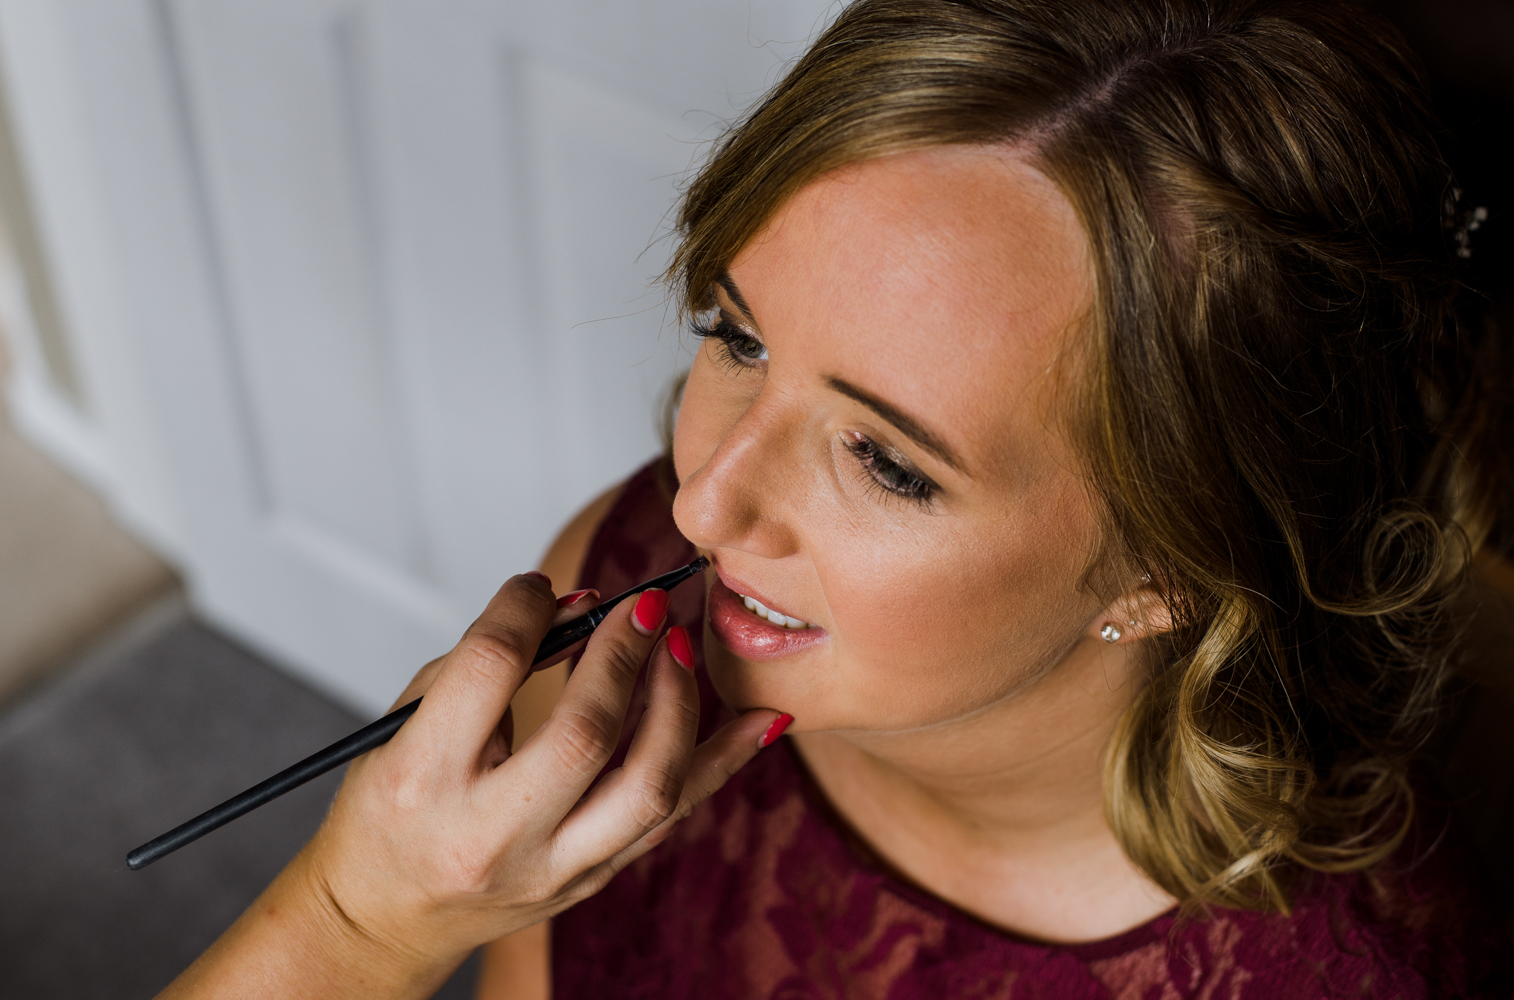 A bridesmaid having her lipstick applied during morning preparations